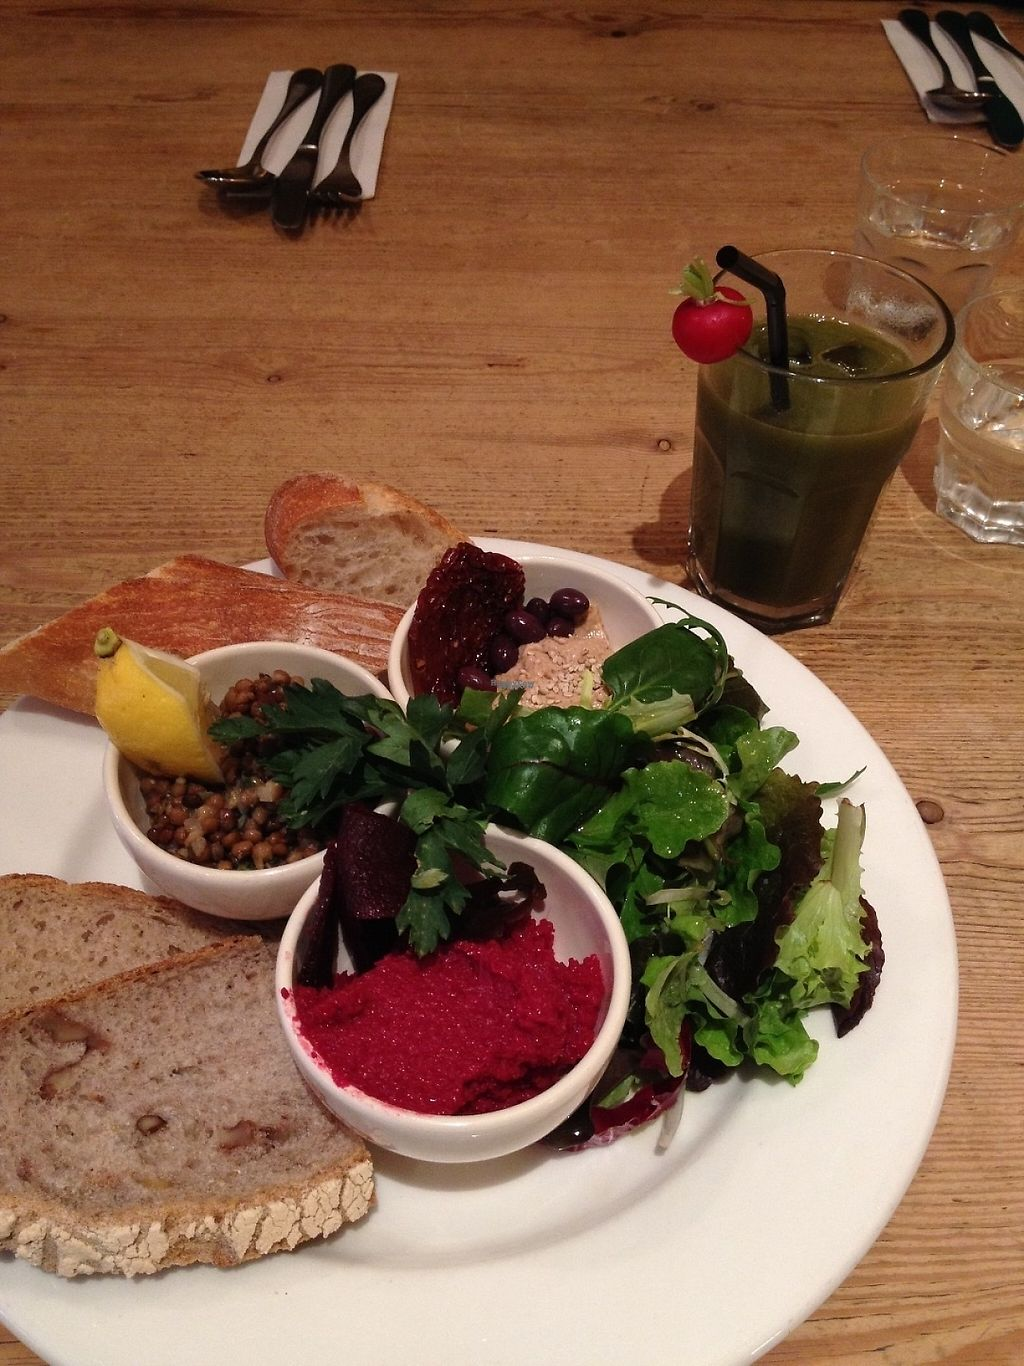 """Photo of Le Pain Quotidien  by <a href=""""/members/profile/aertskato"""">aertskato</a> <br/>Bread with different spreads <br/> April 14, 2017  - <a href='/contact/abuse/image/86340/247934'>Report</a>"""